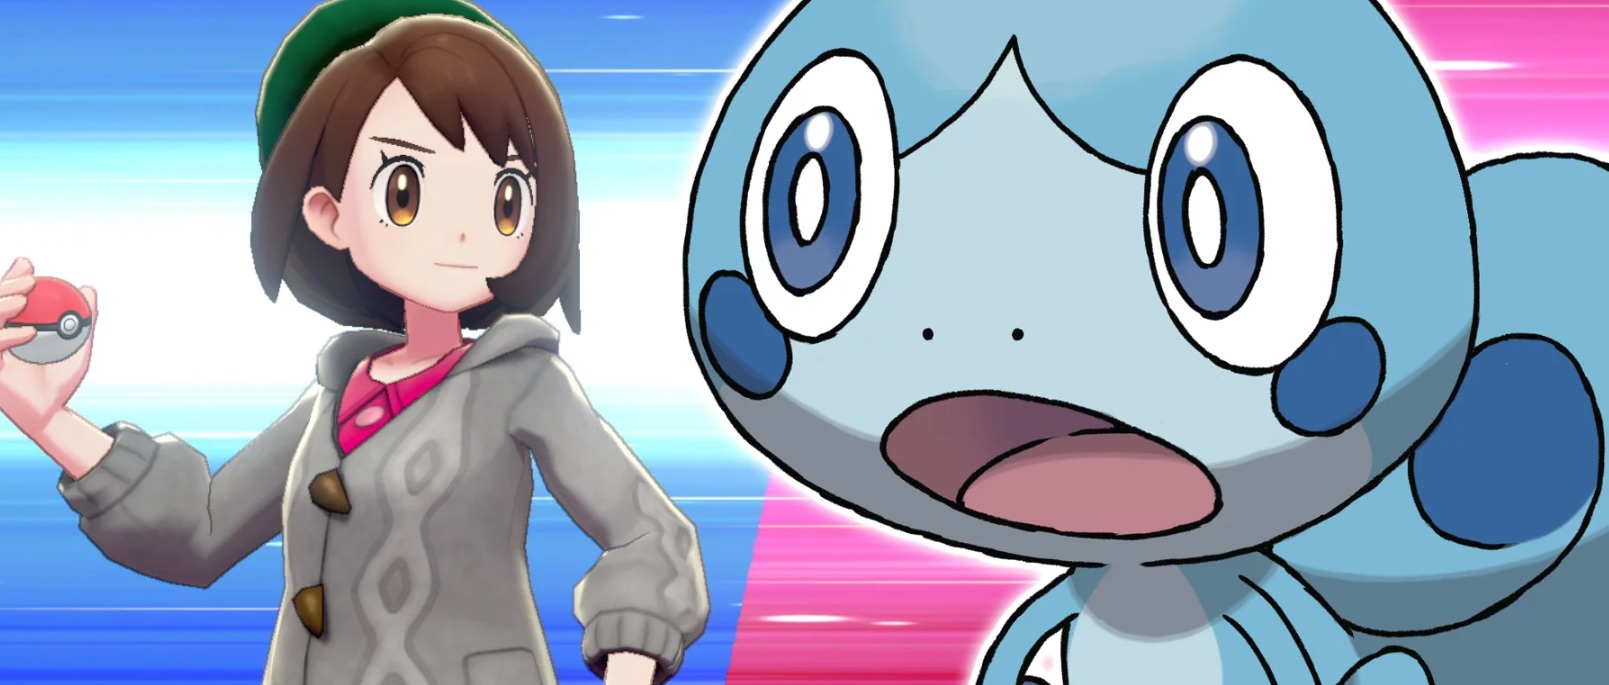 Pokemon Sword & Shield is being developed primarily with handheld play in mind screenshot